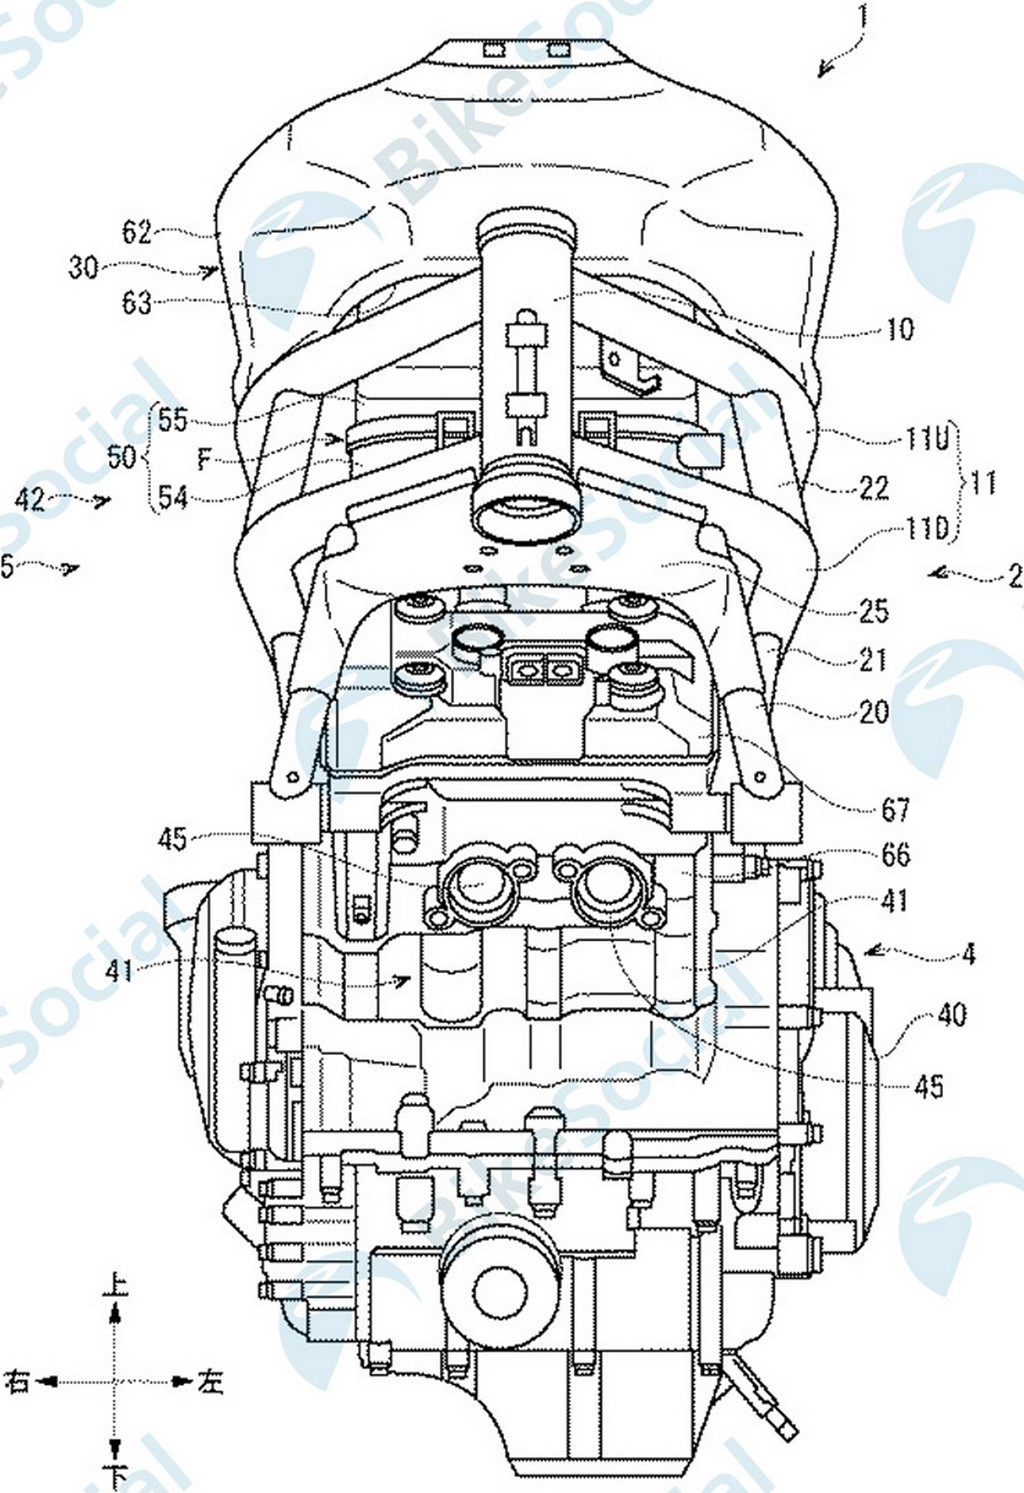 Suzuki Gsx R300 S300 In Works Patent Images Leaked 2018 Ecima Unveil 427 Engine Diagram Parallel Twin